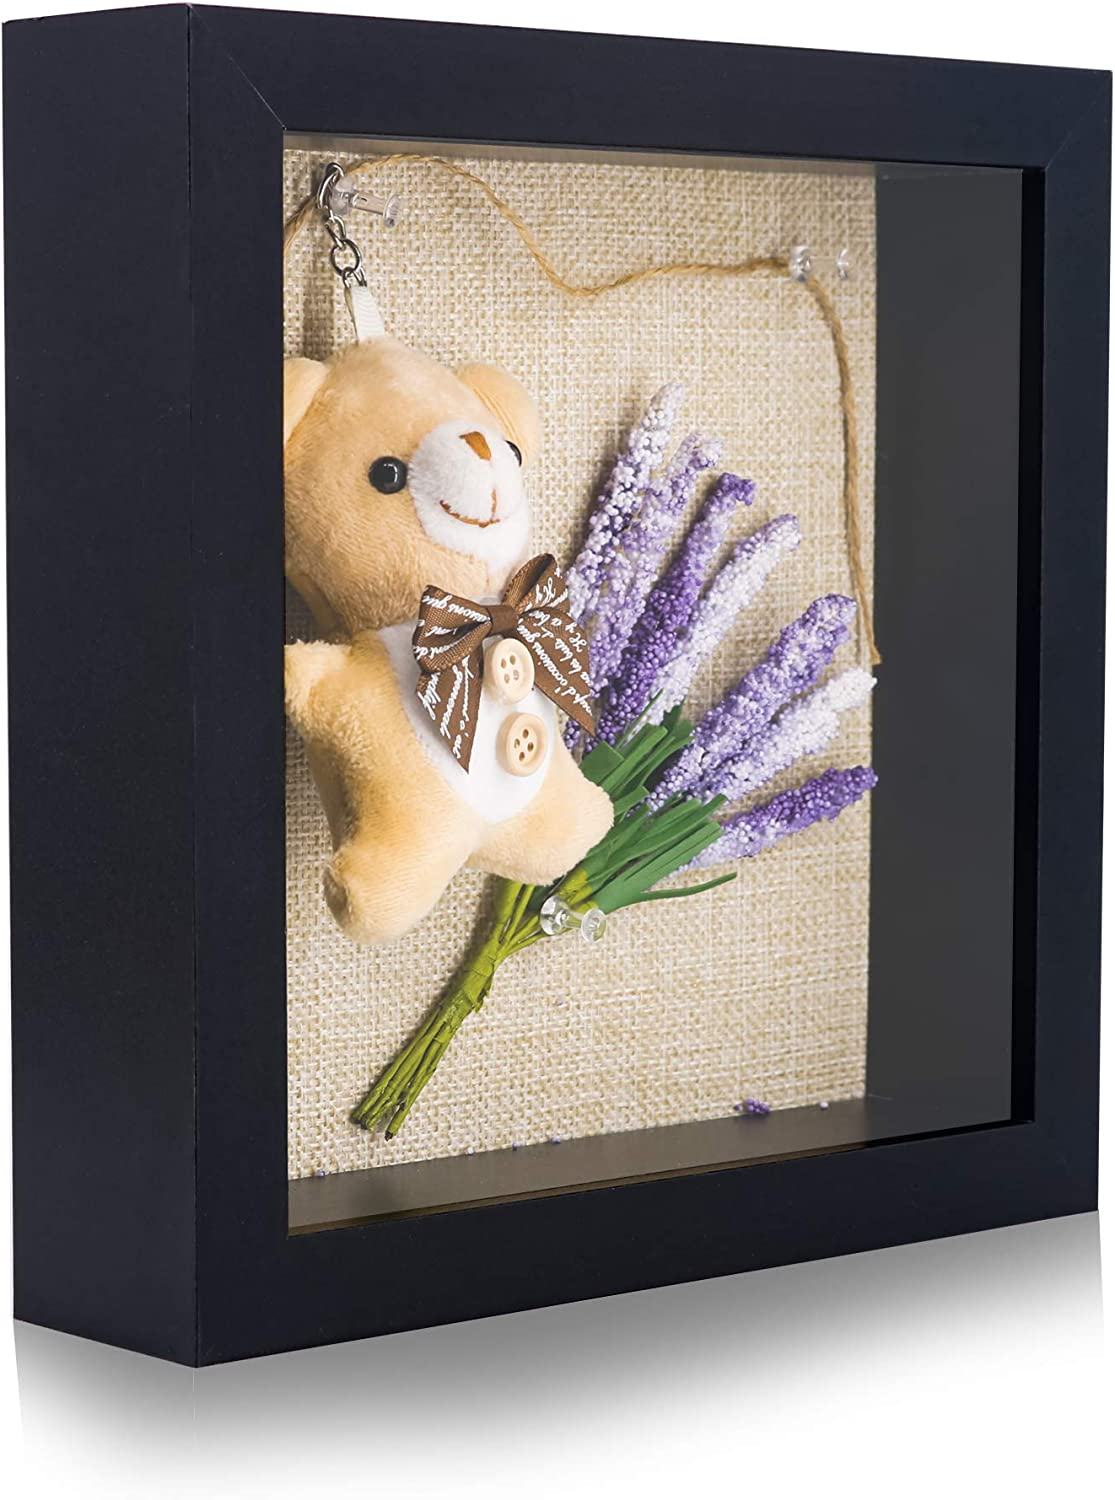 GraduatePro Shadow Box Frame 8x8 Display Case Black with Linen Background and 6 Stick Pins Memorabilia Awards Medals Photos Memory Box